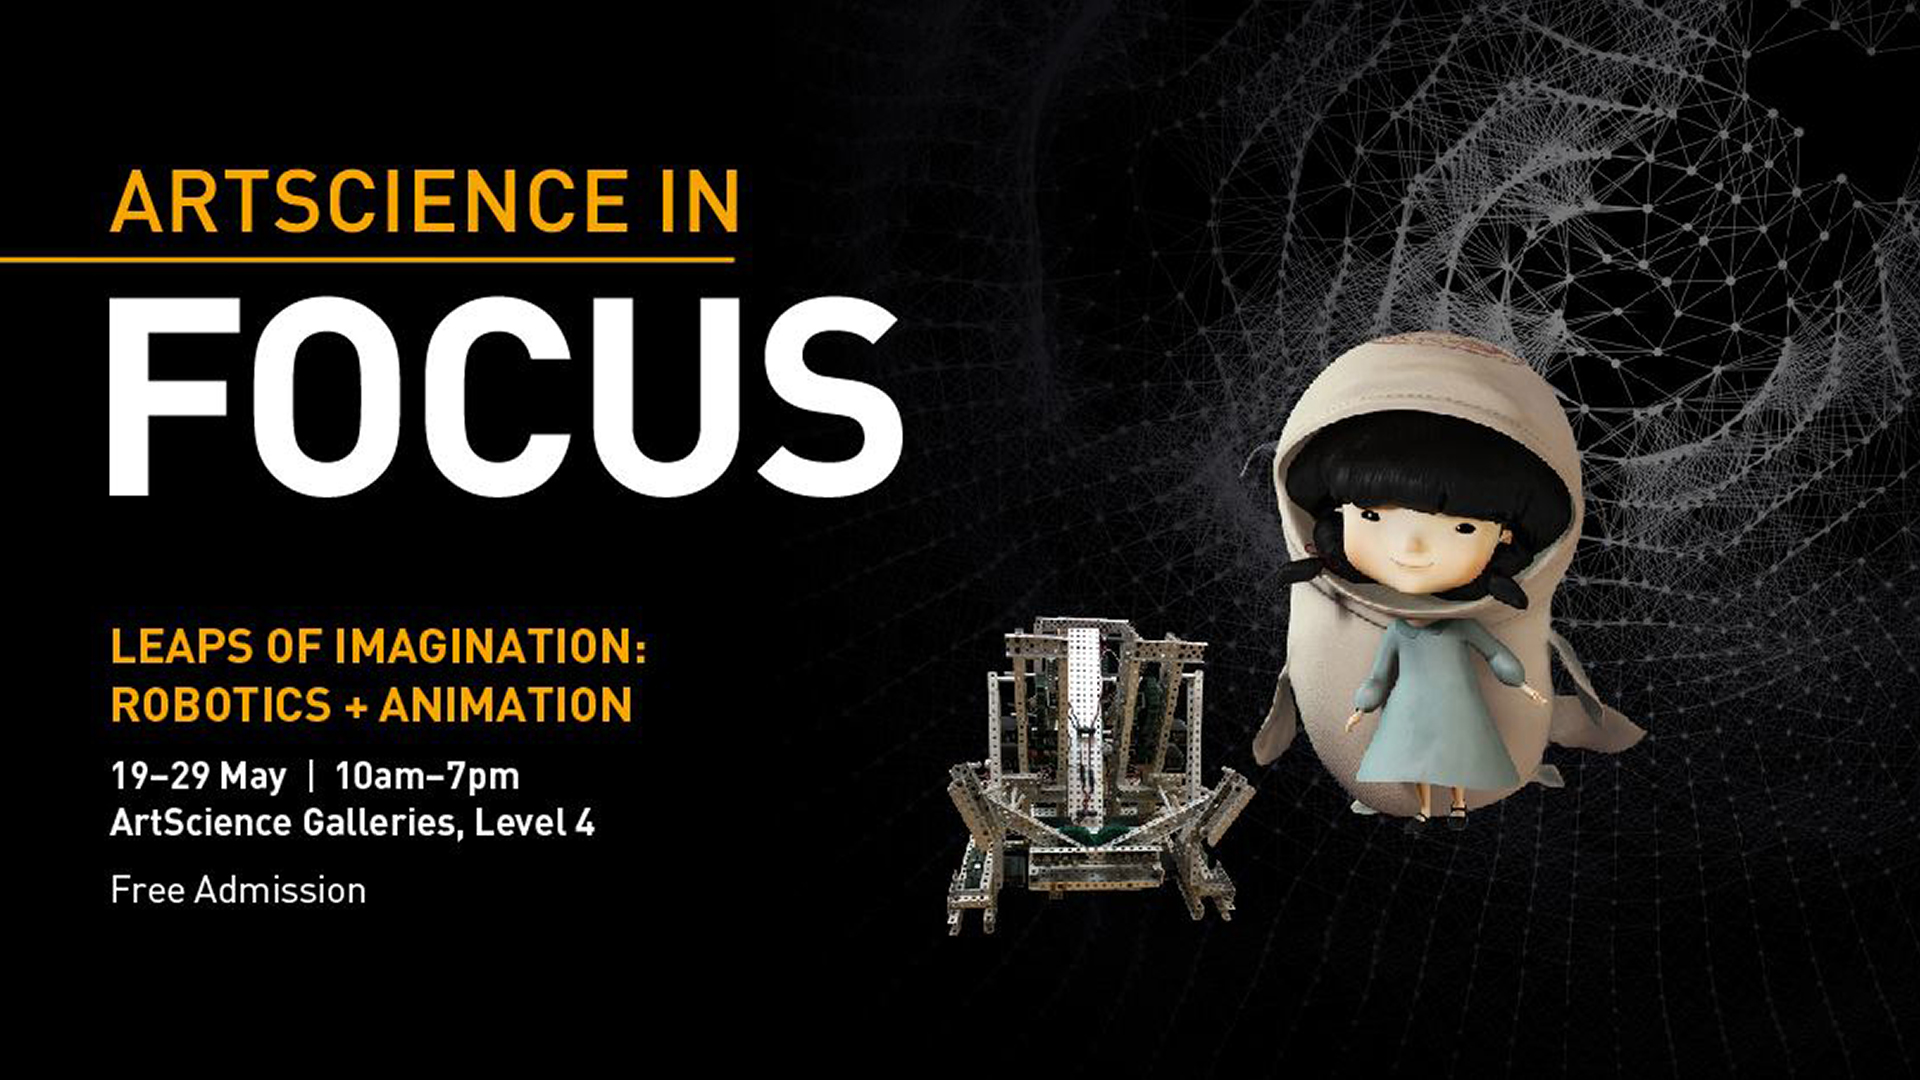 ArtScience in Focus: Leaps of Imagination: Robotics + Animation